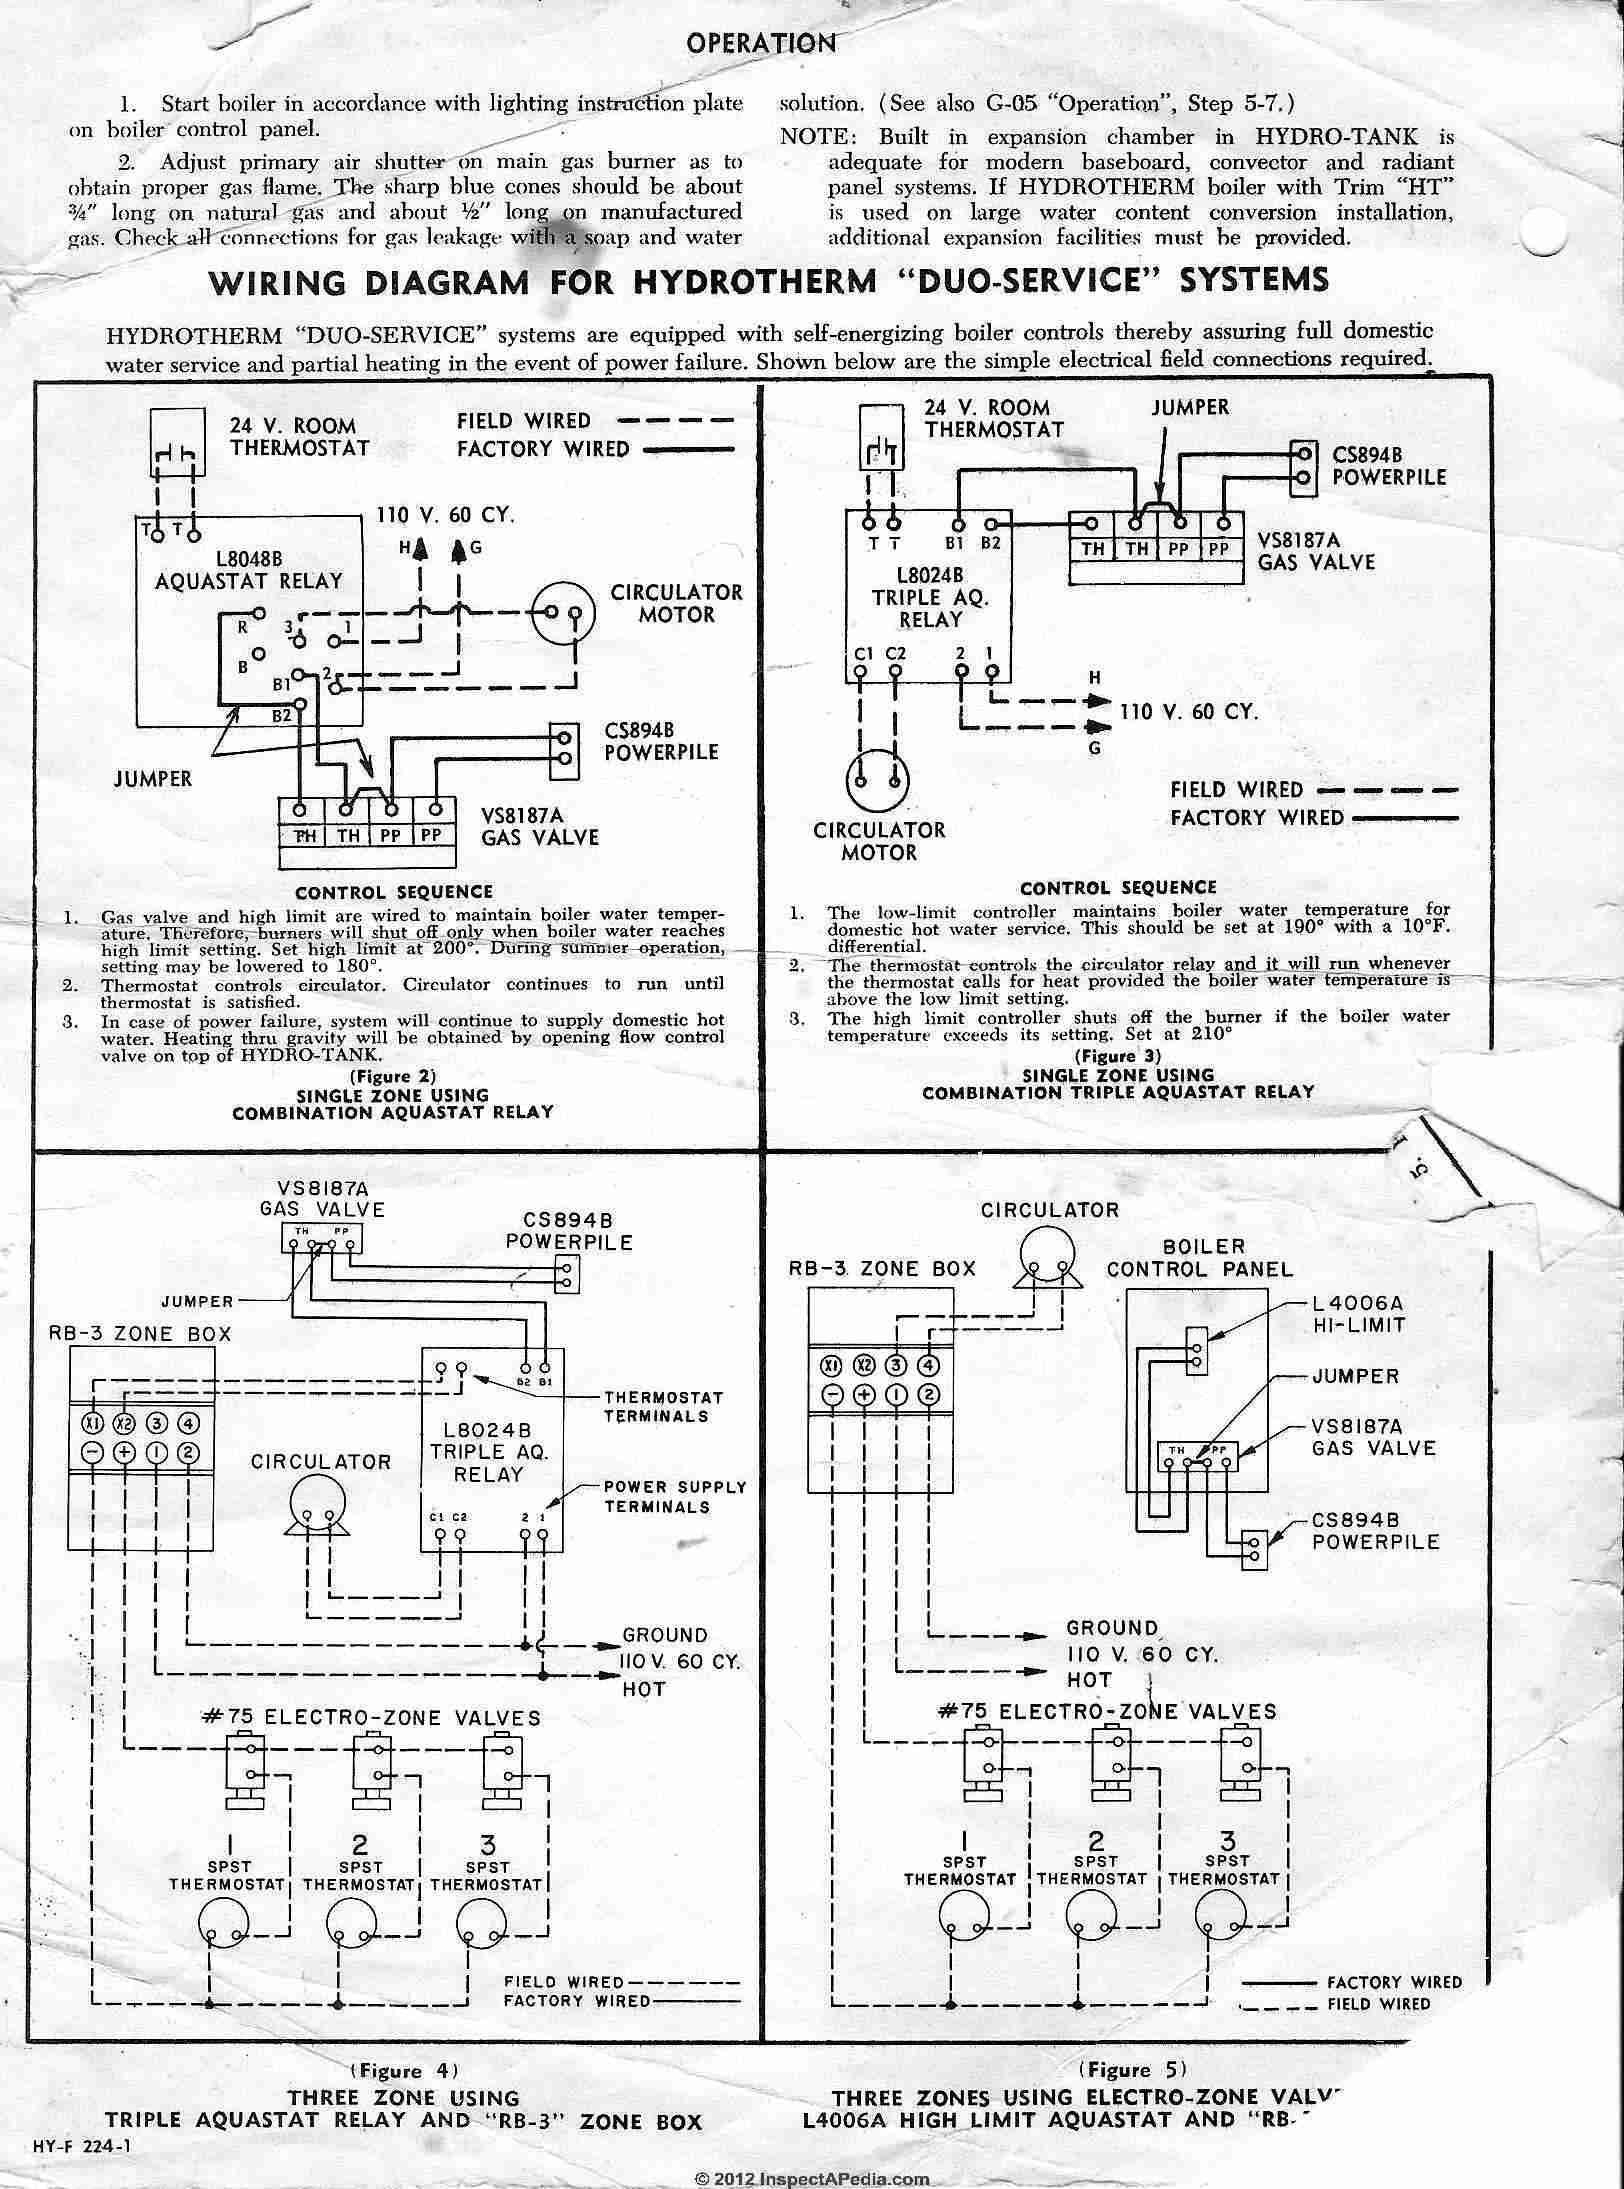 honeywell limit switch wiring diagram Download-16 Channel Remote Control Likewise Honeywell Fan Limit Switch Wiring Furnace Fan Relay Wiring Diagram 11-b